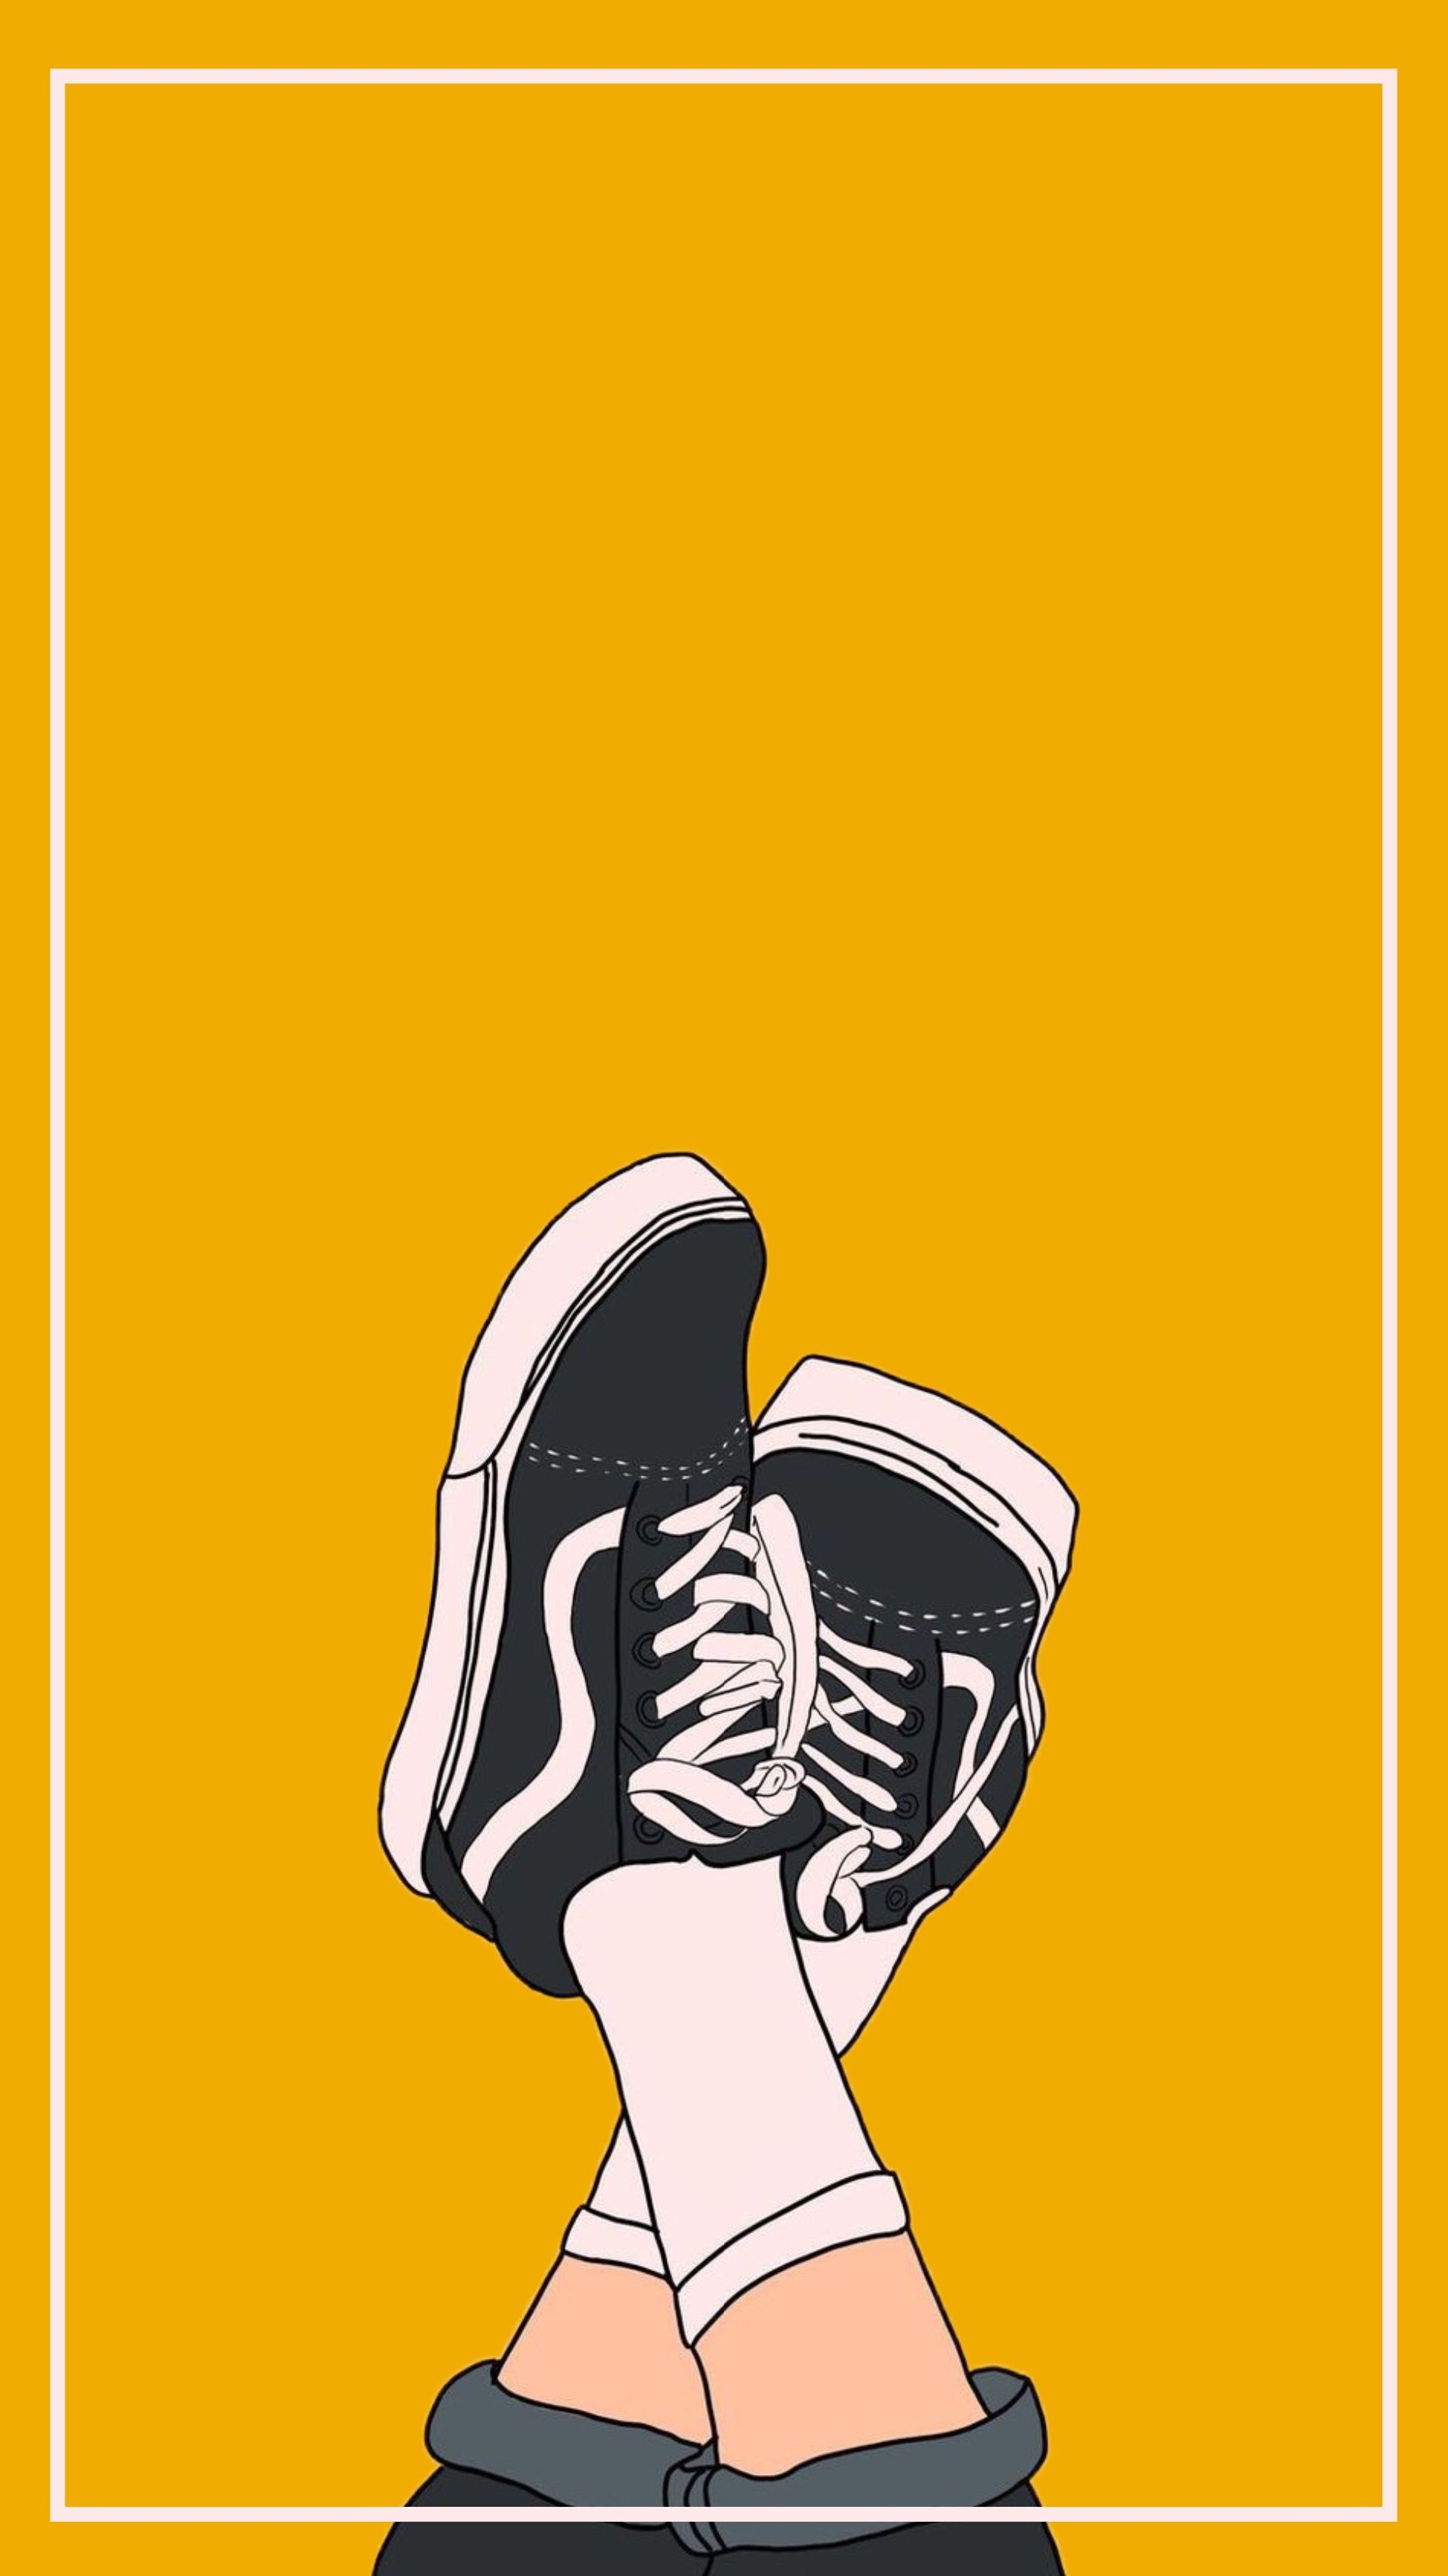 Get Latest Vans Wallpaper for Android Phone Today by